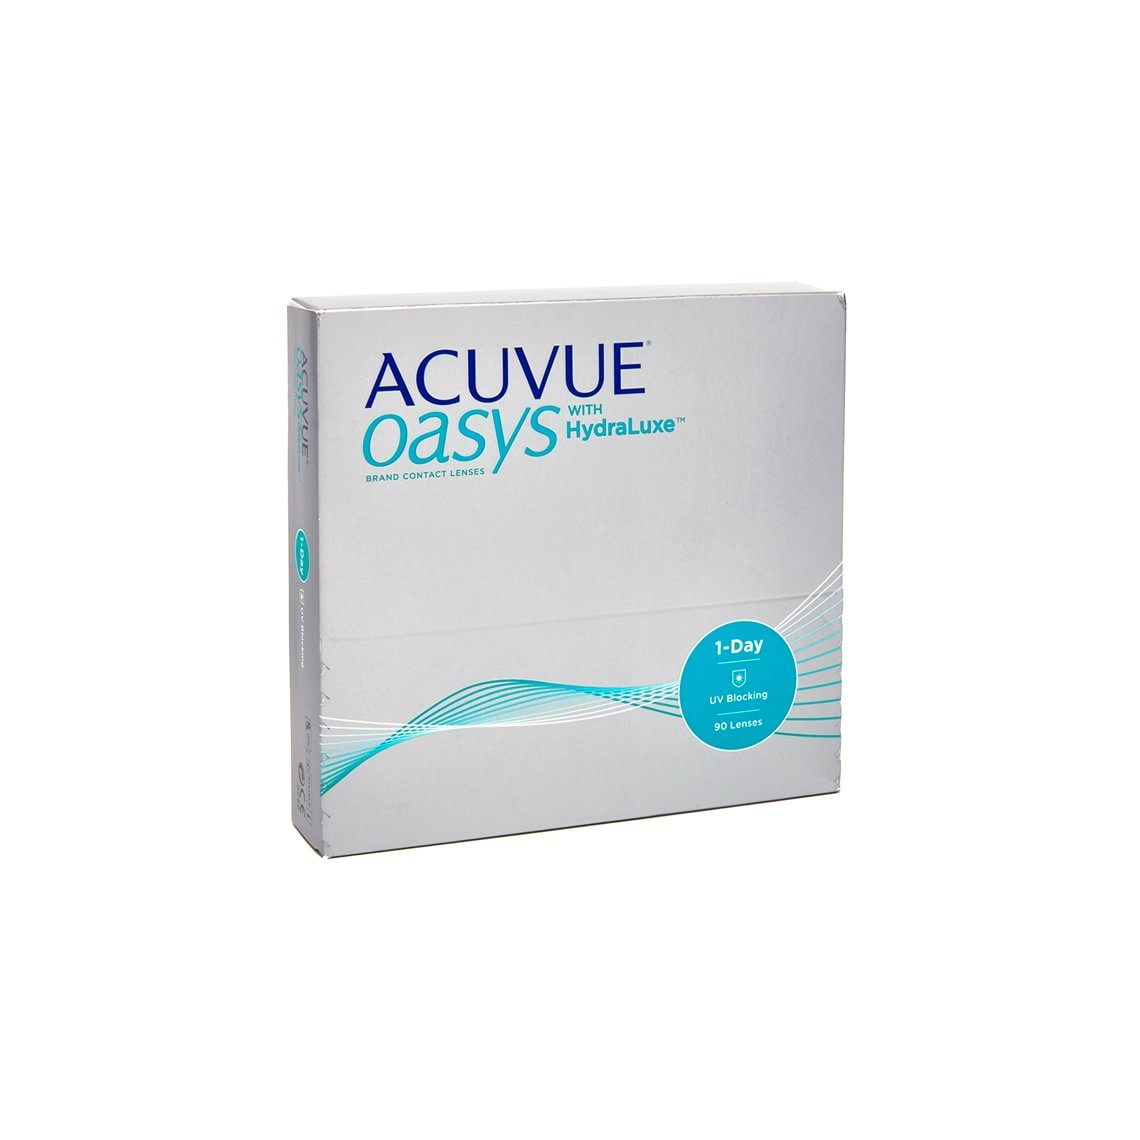 Acuvue Oasys 1-Day with HydraLuxe 90 st/box